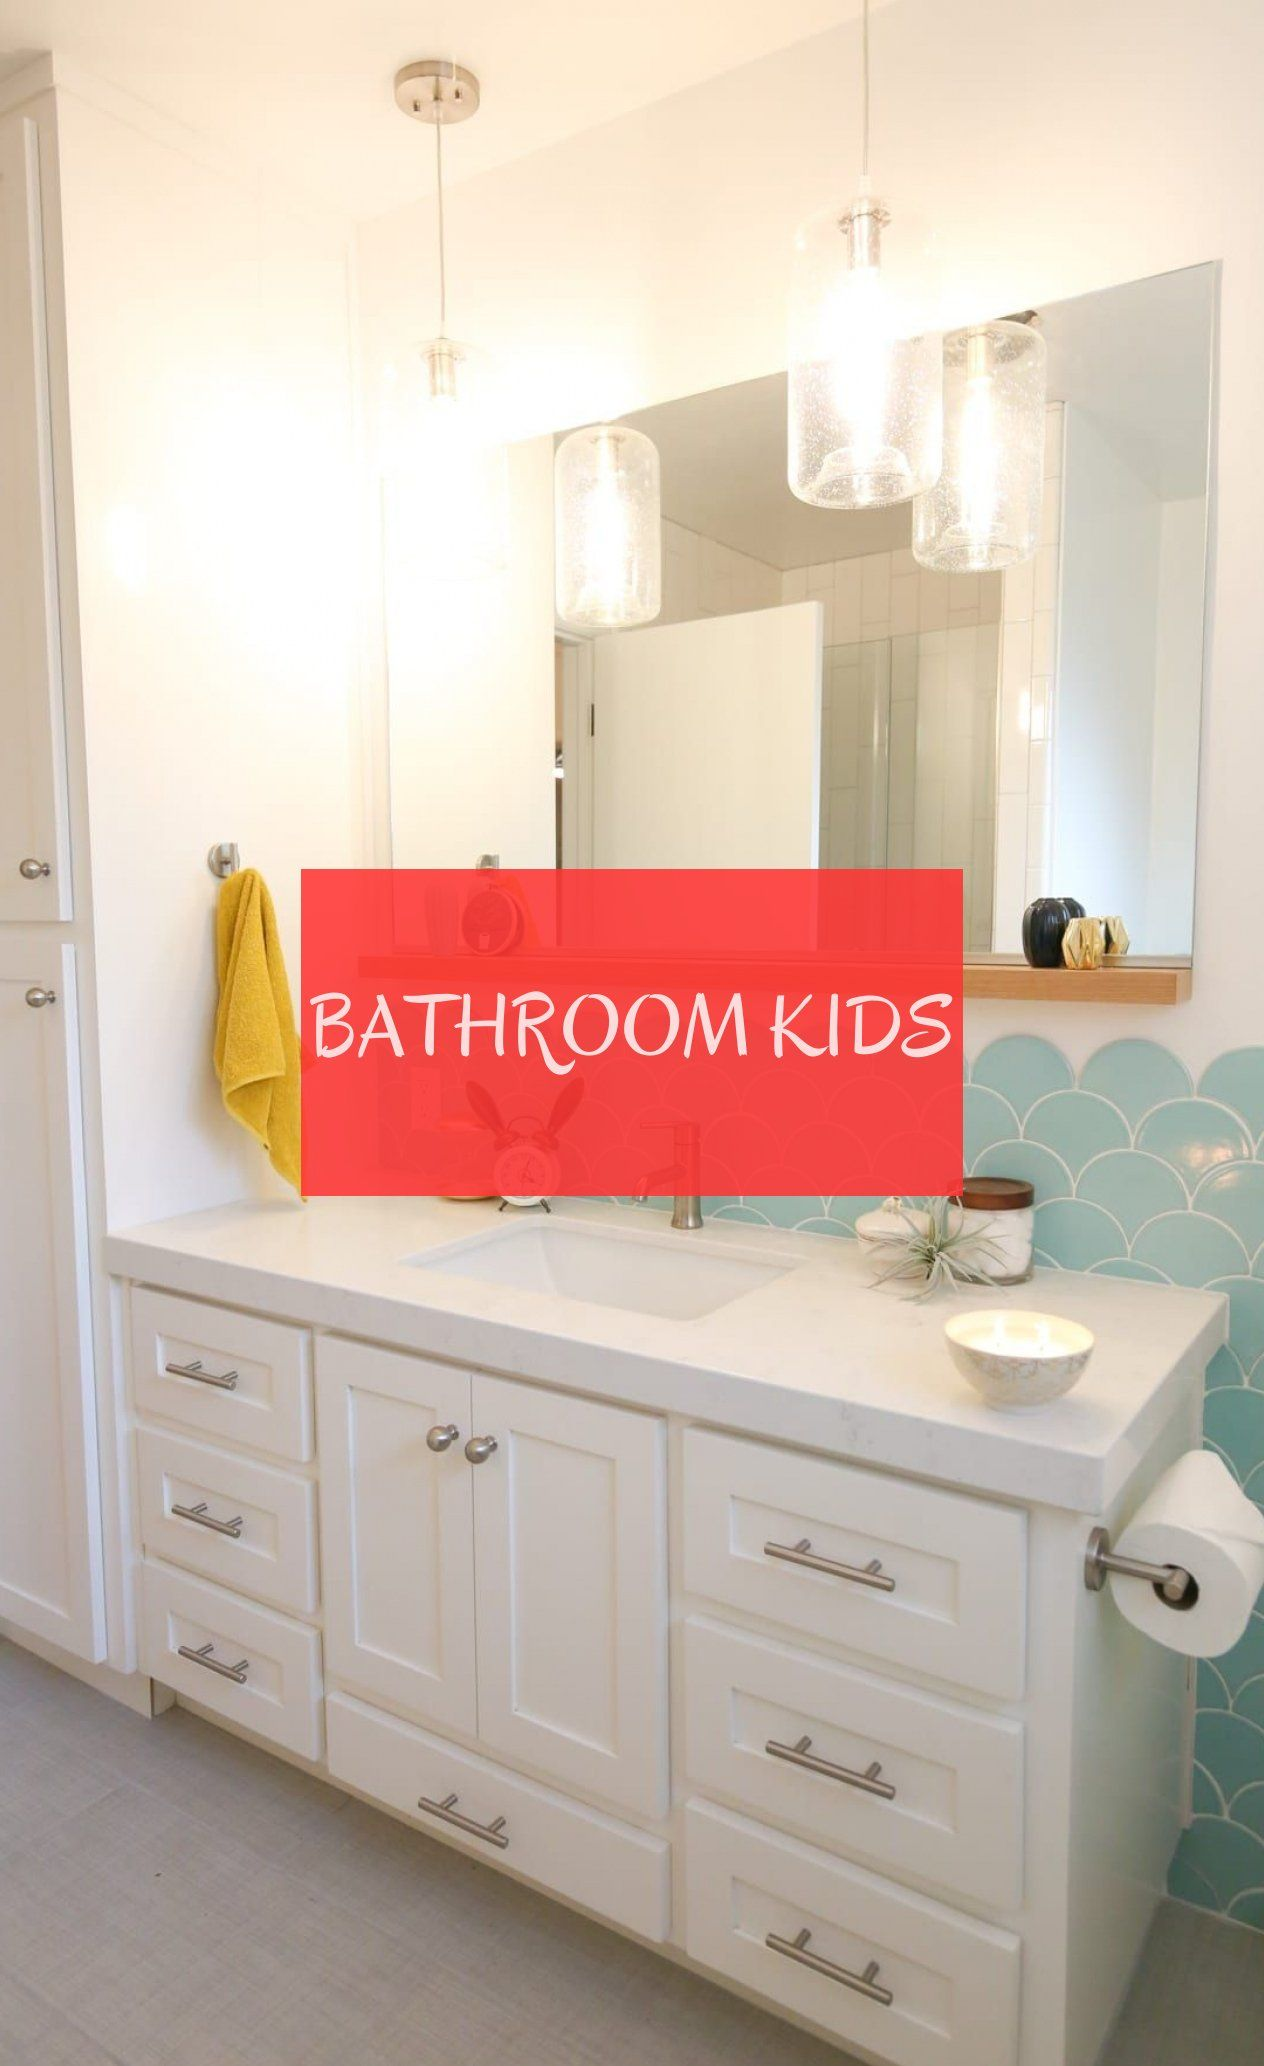 Badezimmer Kinder Bathroom Kids Home Decor Decor